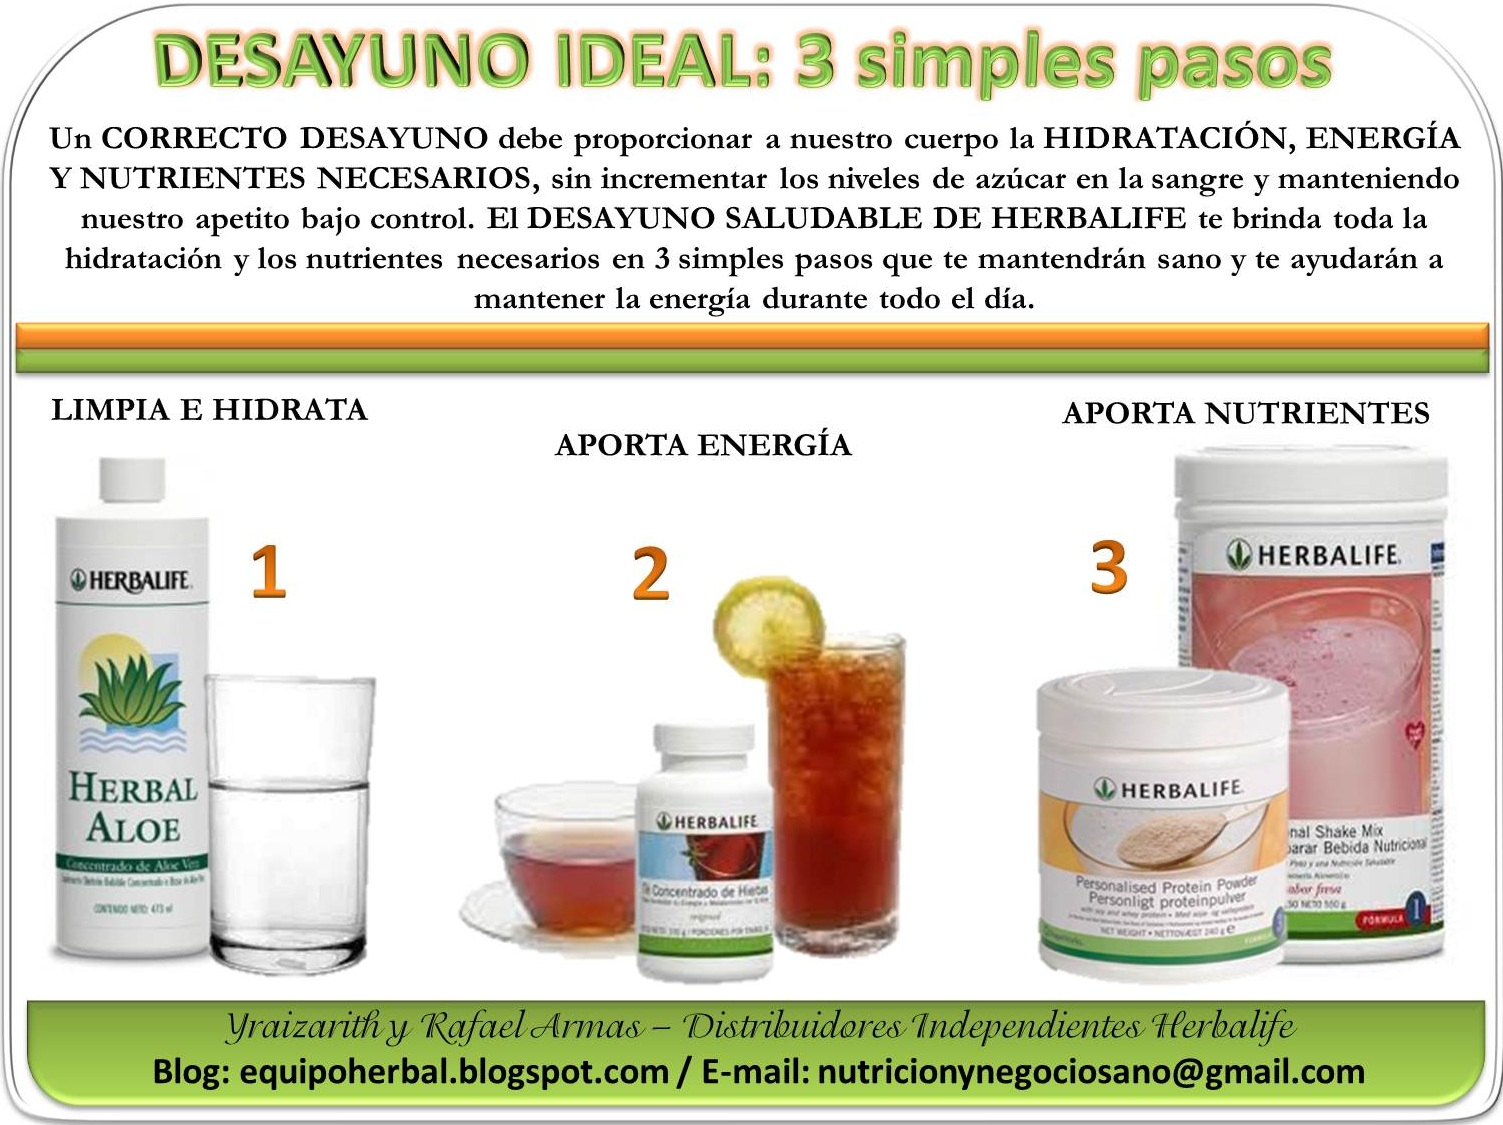 Equipo Herbal Herbalife Distribuidor Independiente